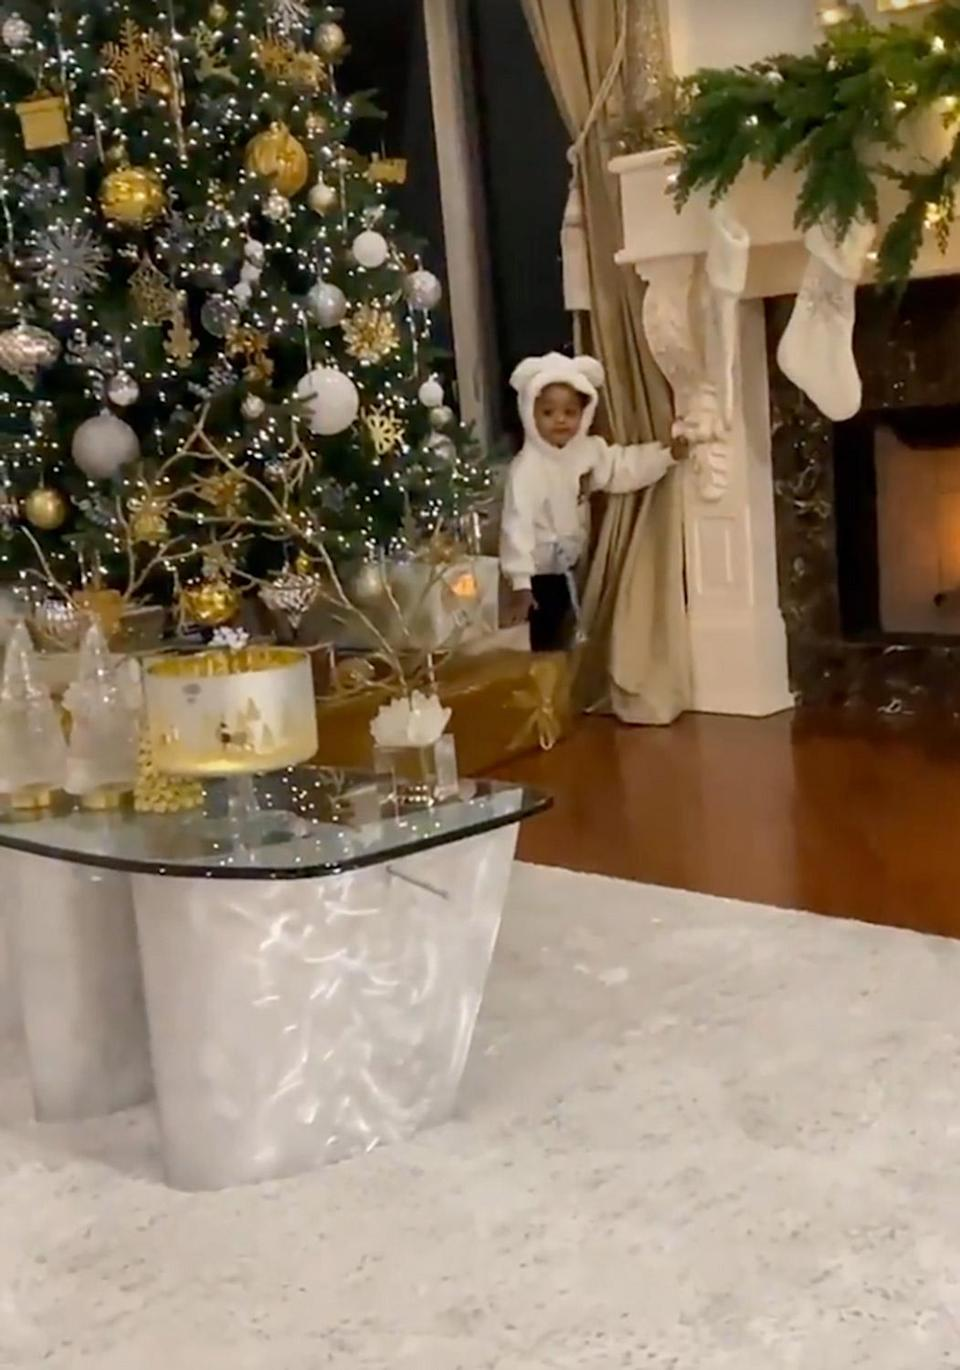 """<p>Cardi B's Christmas decor may be so over-the-top, <a href=""""https://people.com/music/cardi-b-she-shows-off-beautiful-christmas-decorations-i-cant-believe-this-is-my-home/"""" rel=""""nofollow noopener"""" target=""""_blank"""" data-ylk=""""slk:even the rapper herself can't believe it"""" class=""""link rapid-noclick-resp"""">even the rapper herself can't believe it</a> — but cute Kulture Kiari still manages to outshine it all. </p>"""